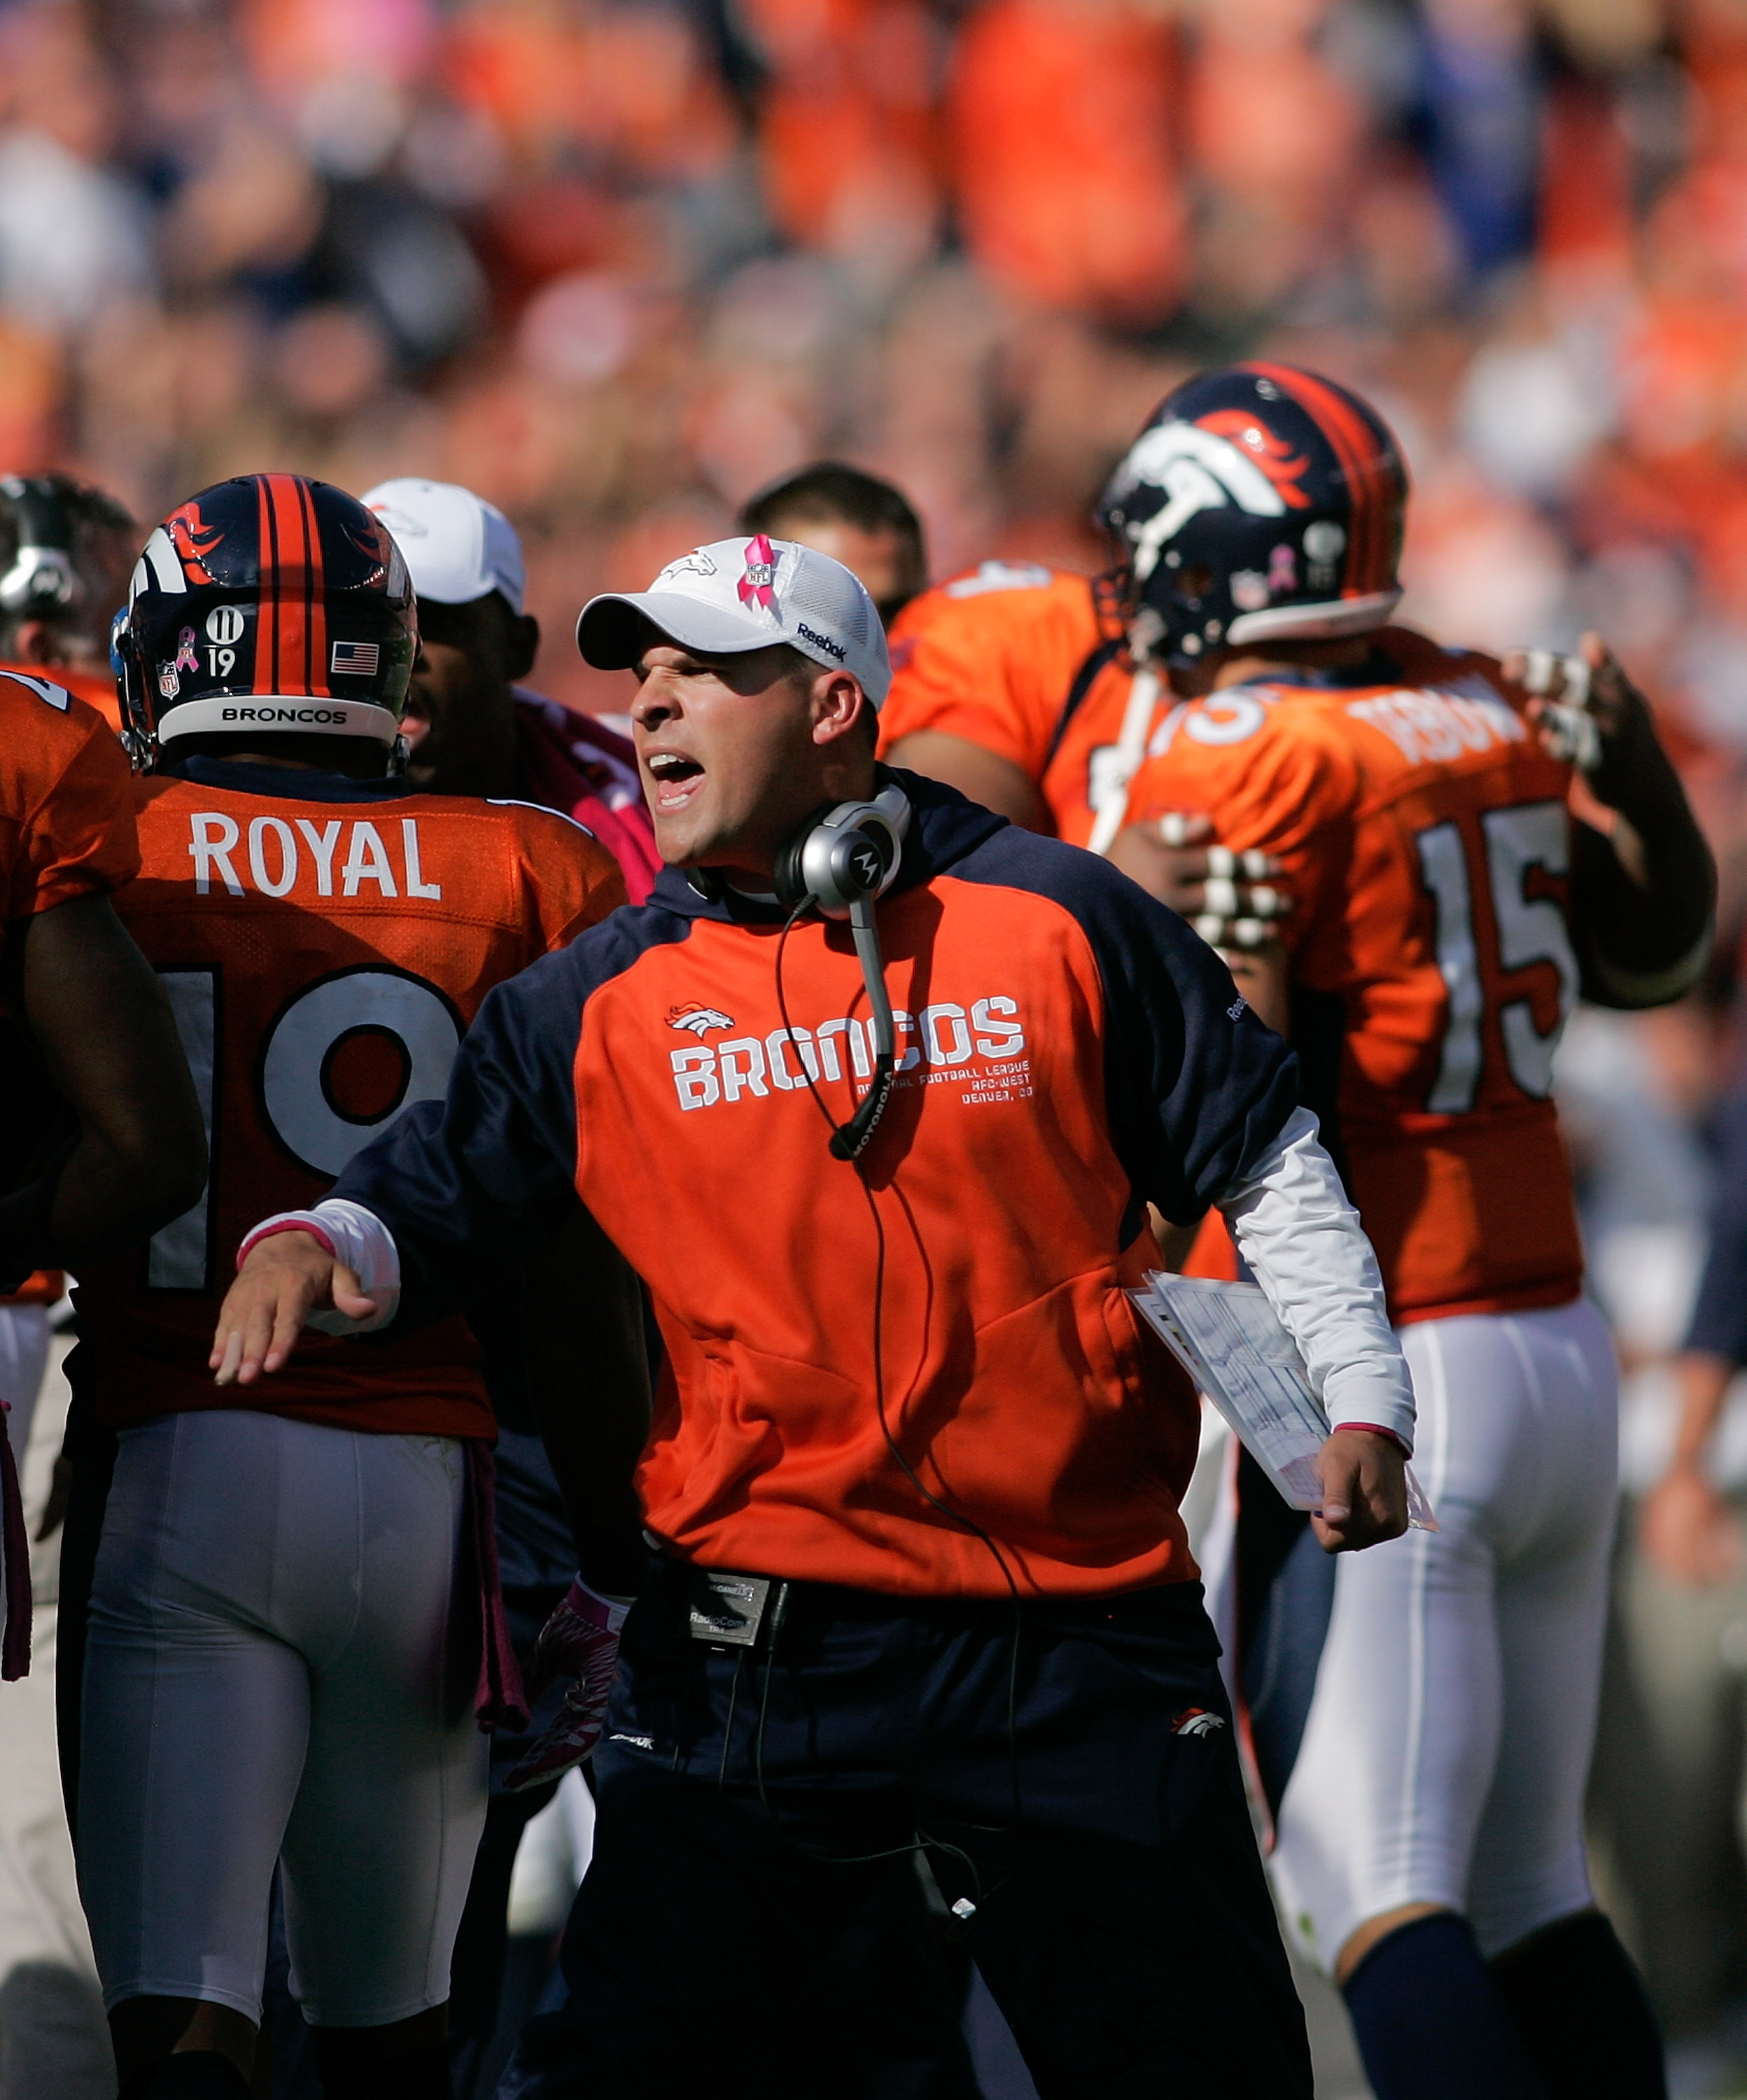 DENVER - OCTOBER 17:  Head coach Josh McDaniels of the Denver Broncos celebrates a touchdown by quarterback Tim Tebow #15 in the first half against the New York Jets at INVESCO Field at Mile High on October 17, 2010 in Denver, Colorado.  (Photo by Justin